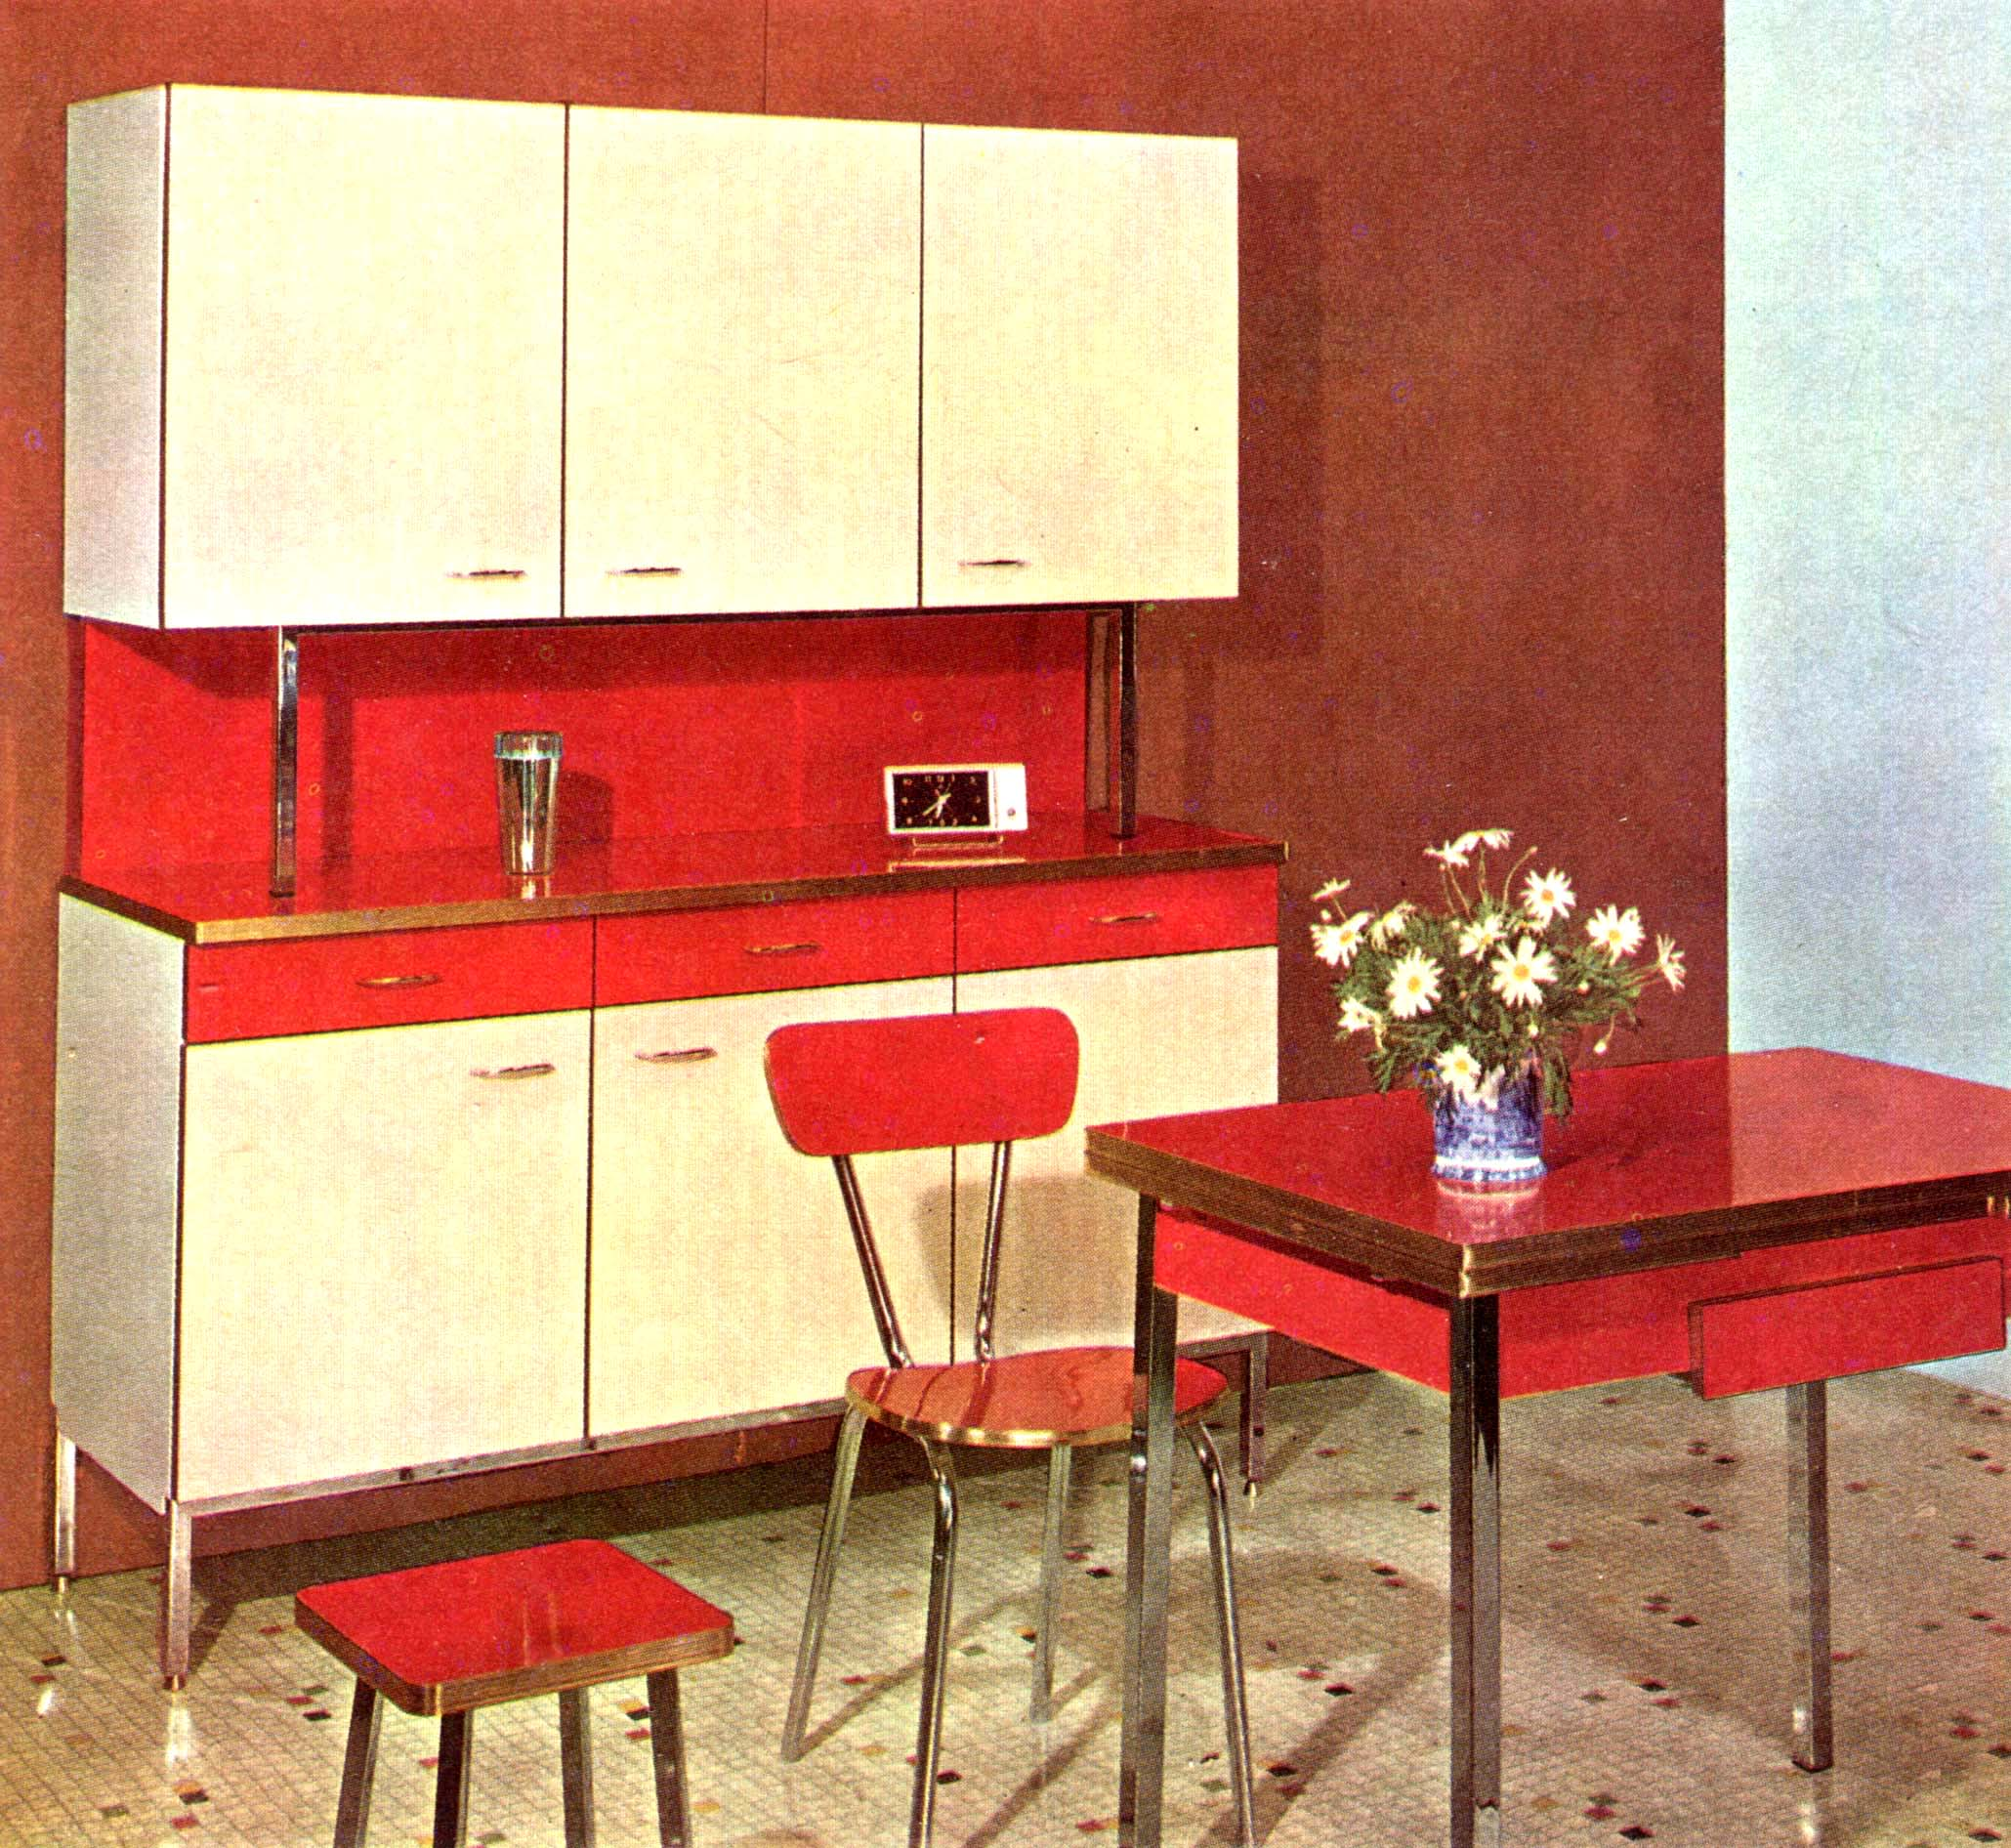 mobilier vintage en formica le style populaire des ann es 1960. Black Bedroom Furniture Sets. Home Design Ideas